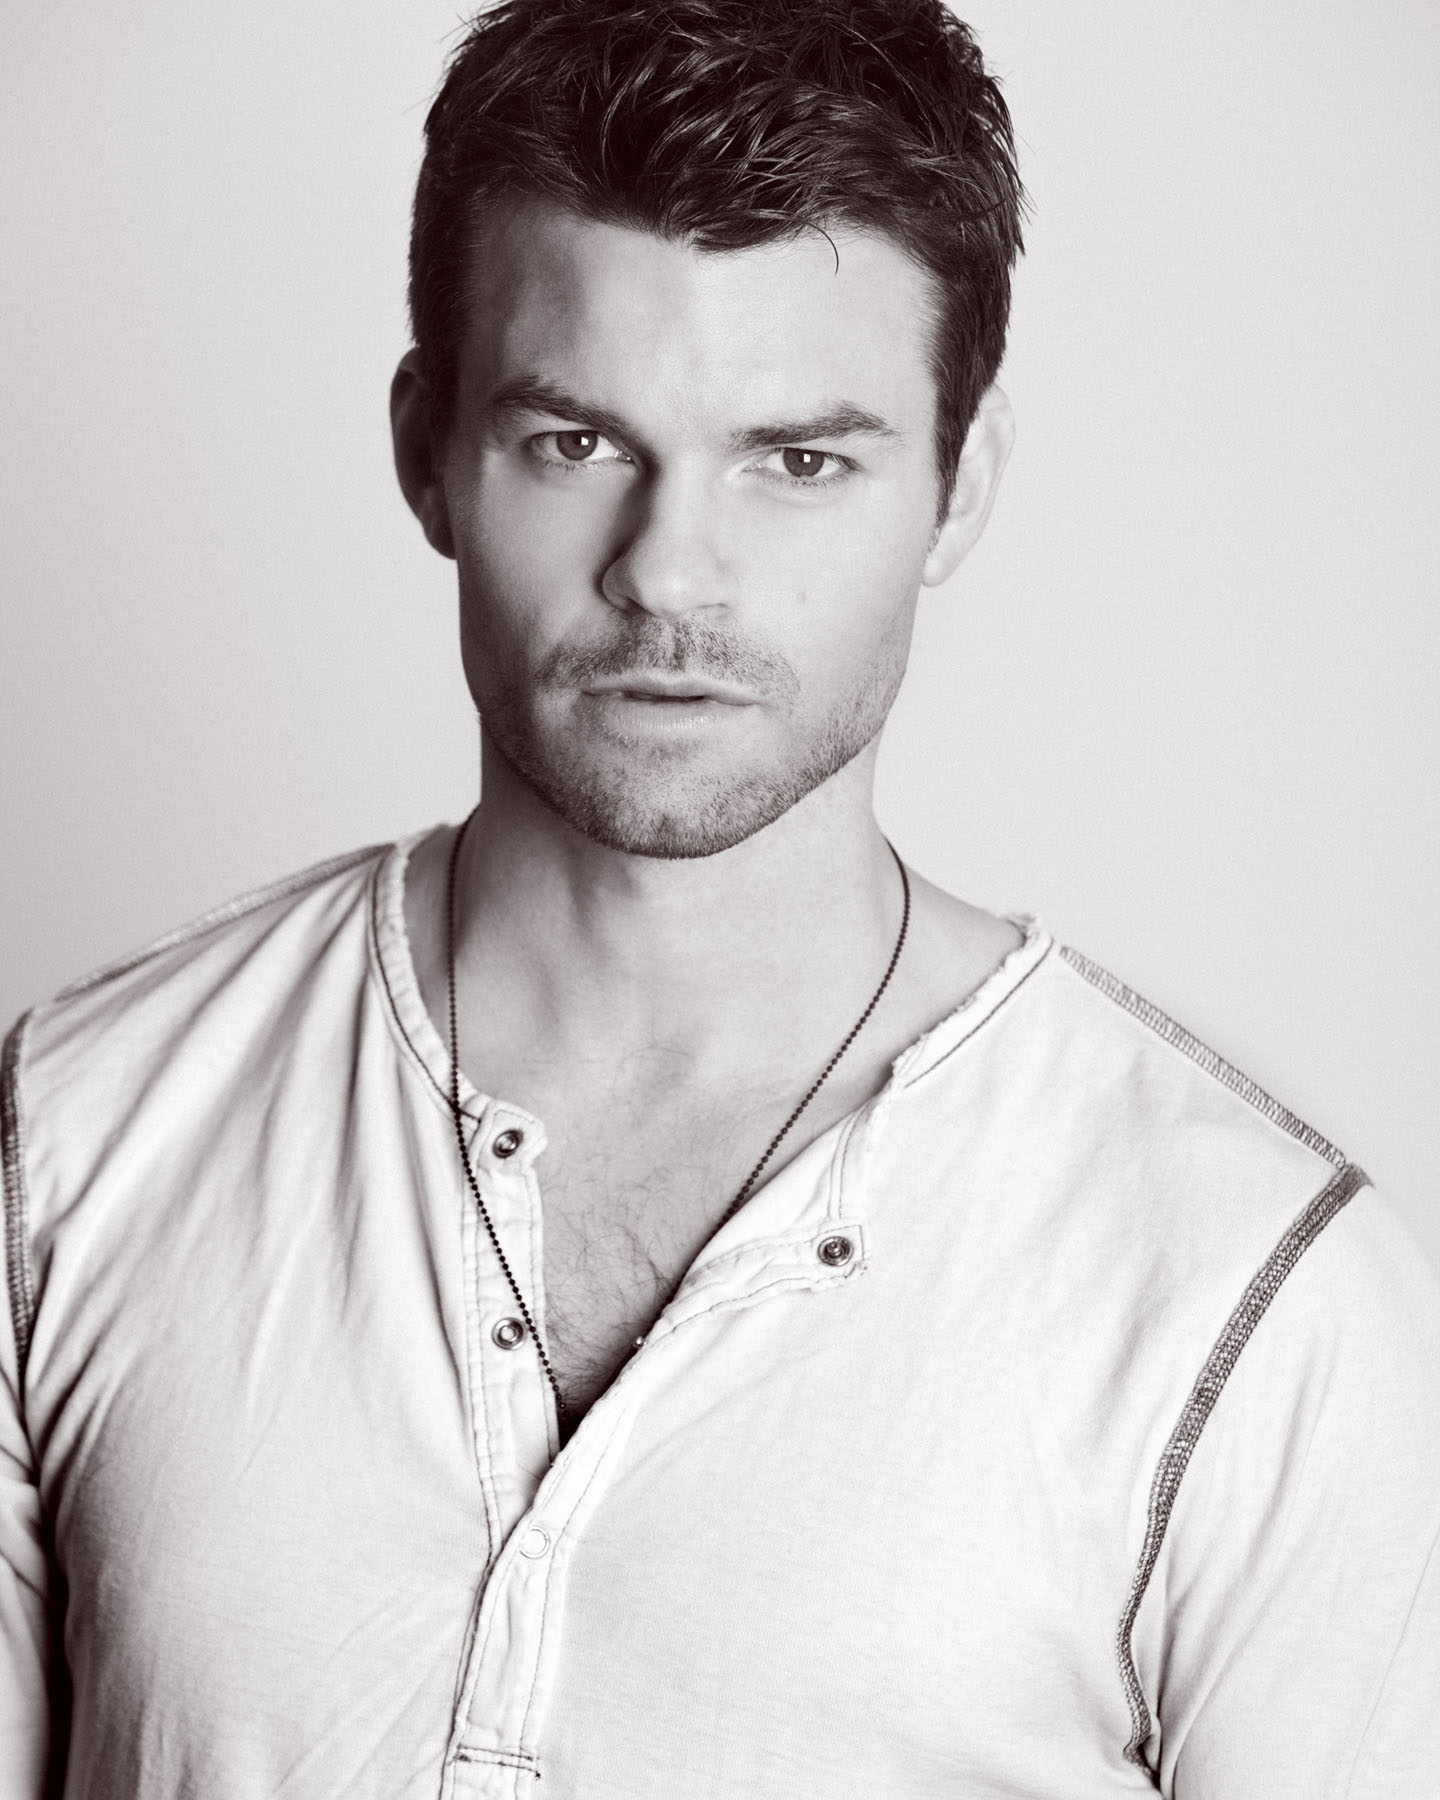 Daniel-Gillies-AKA-Elijah-Mikaelson-from-Vampire-Diaries-wallpaper-wp5404387